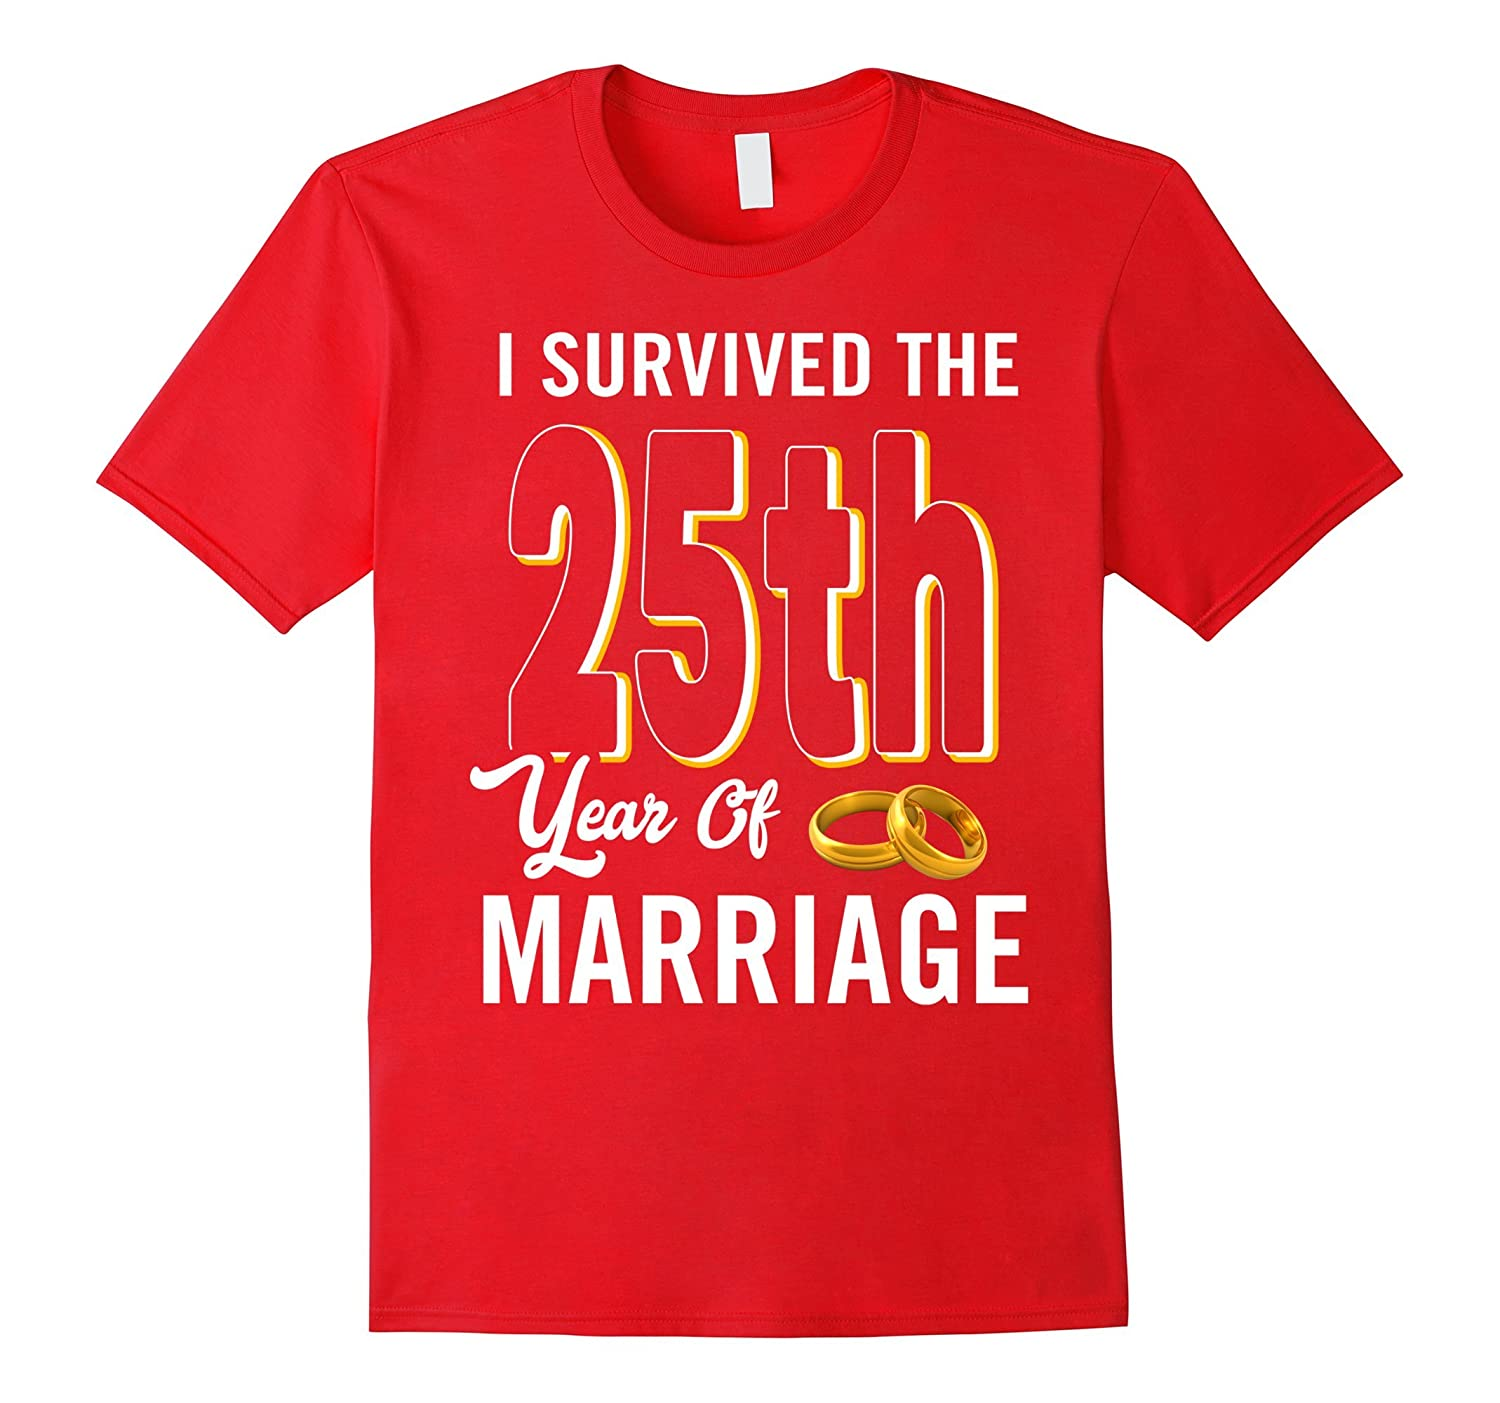 25th Anniversary Shirt I Survived The 25th Year Of Marriage